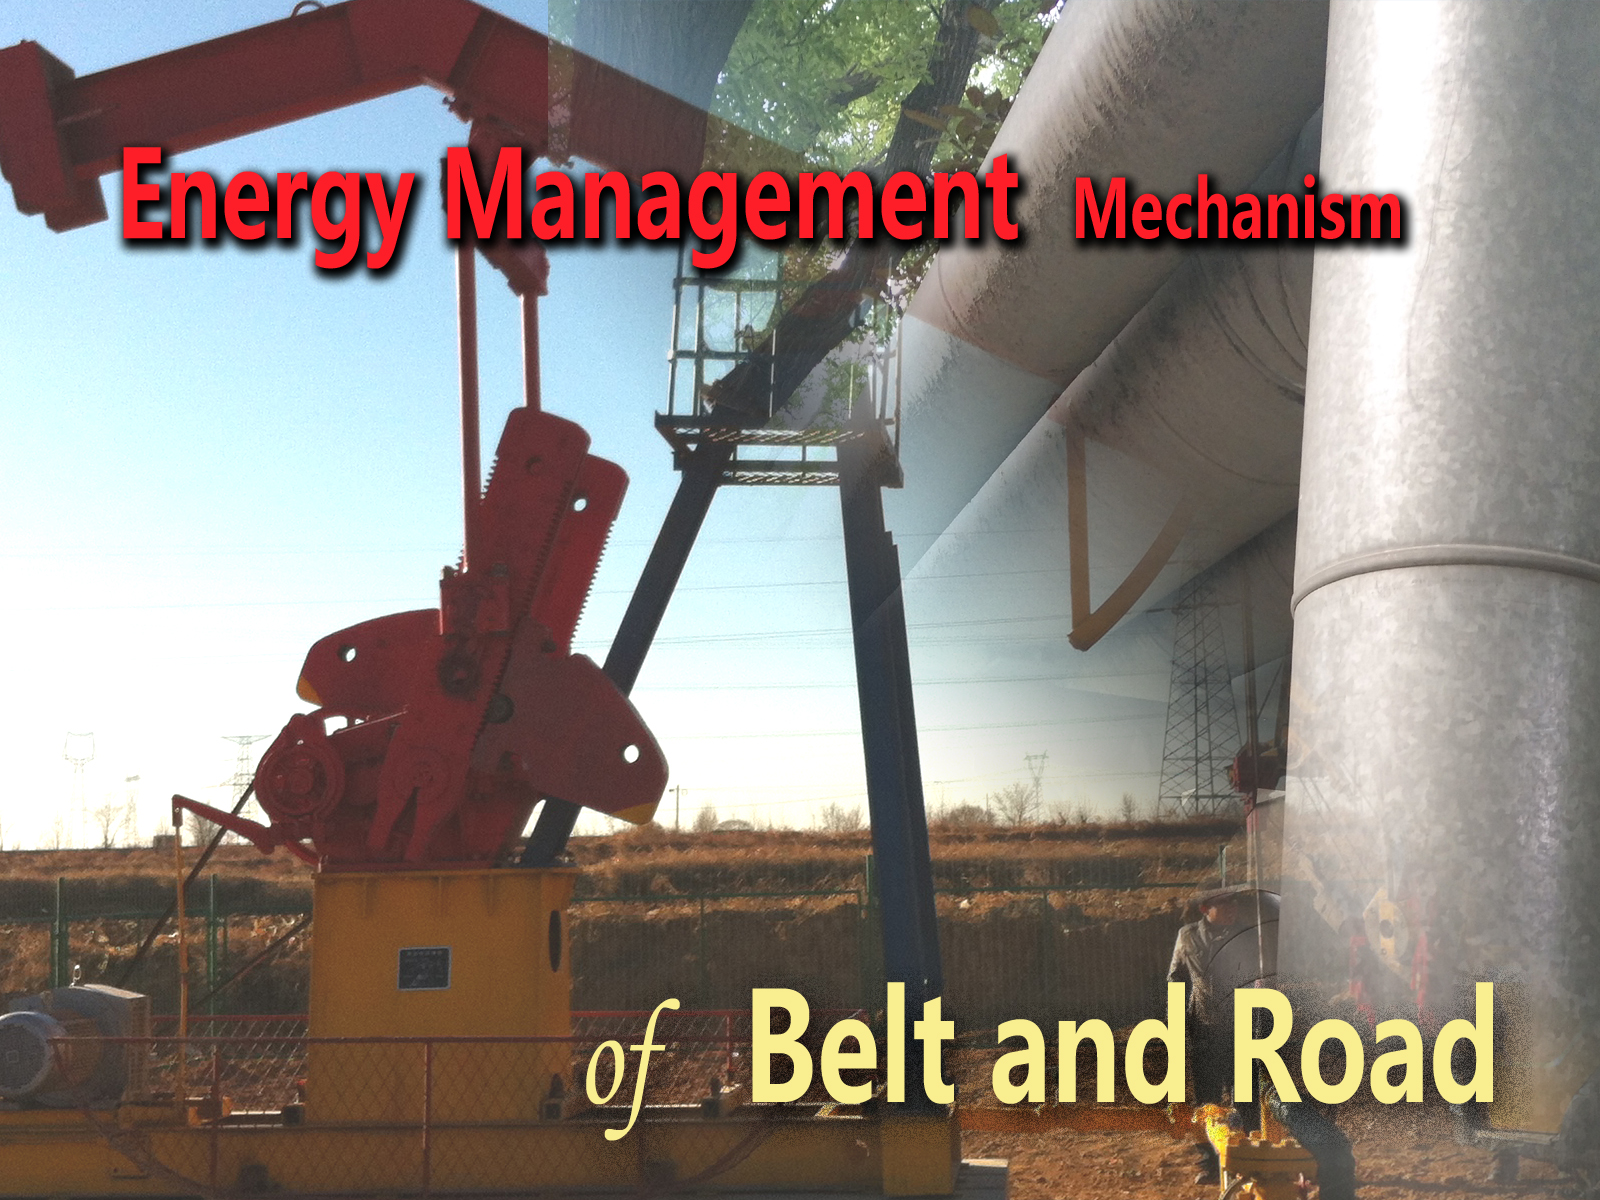 Policy Options on Establishing an Energy Management Mechanism Relating to the Belt and Road Initiative